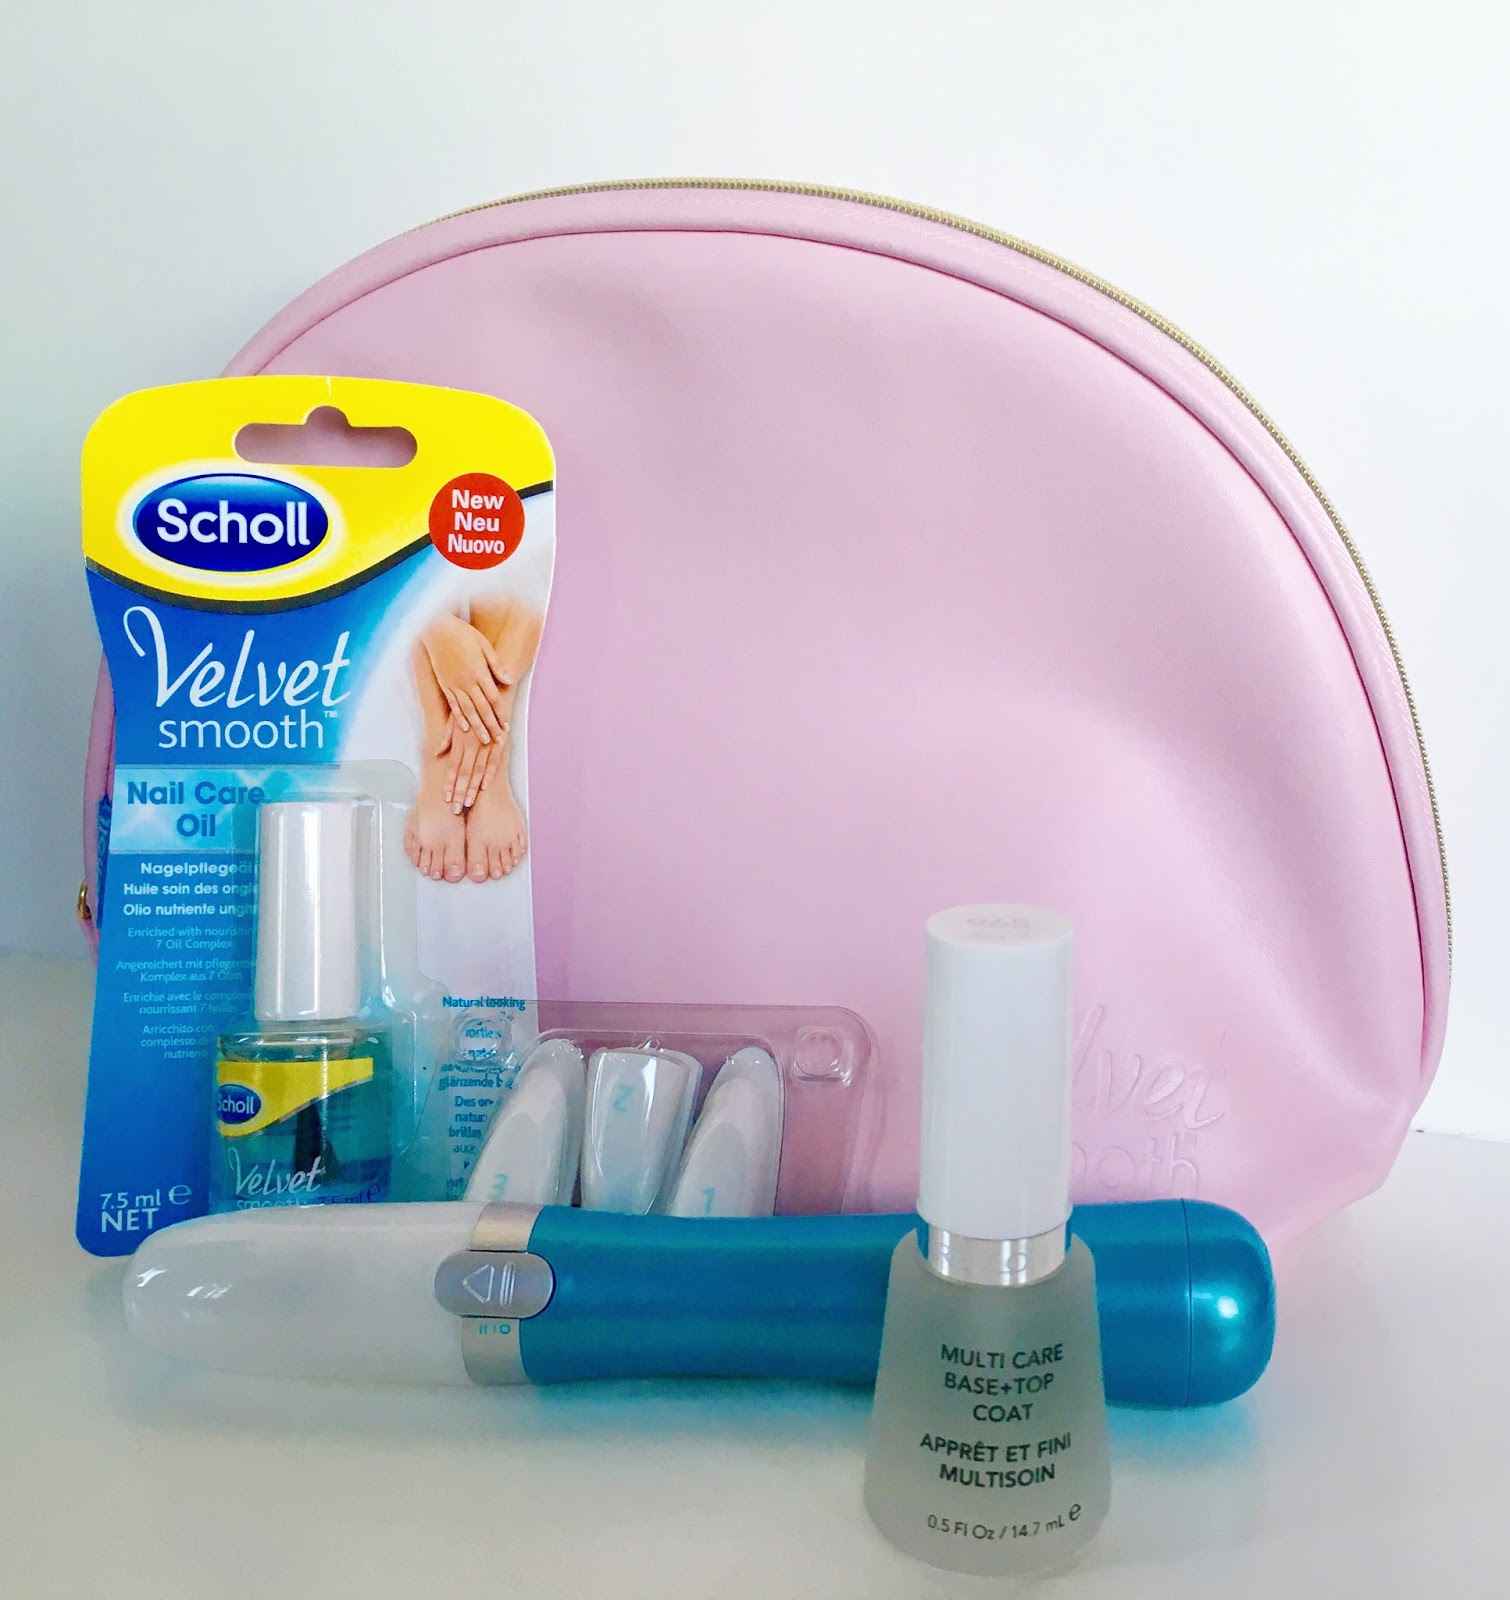 Scholl Velvet Smooth Electronic Nail Care System - review